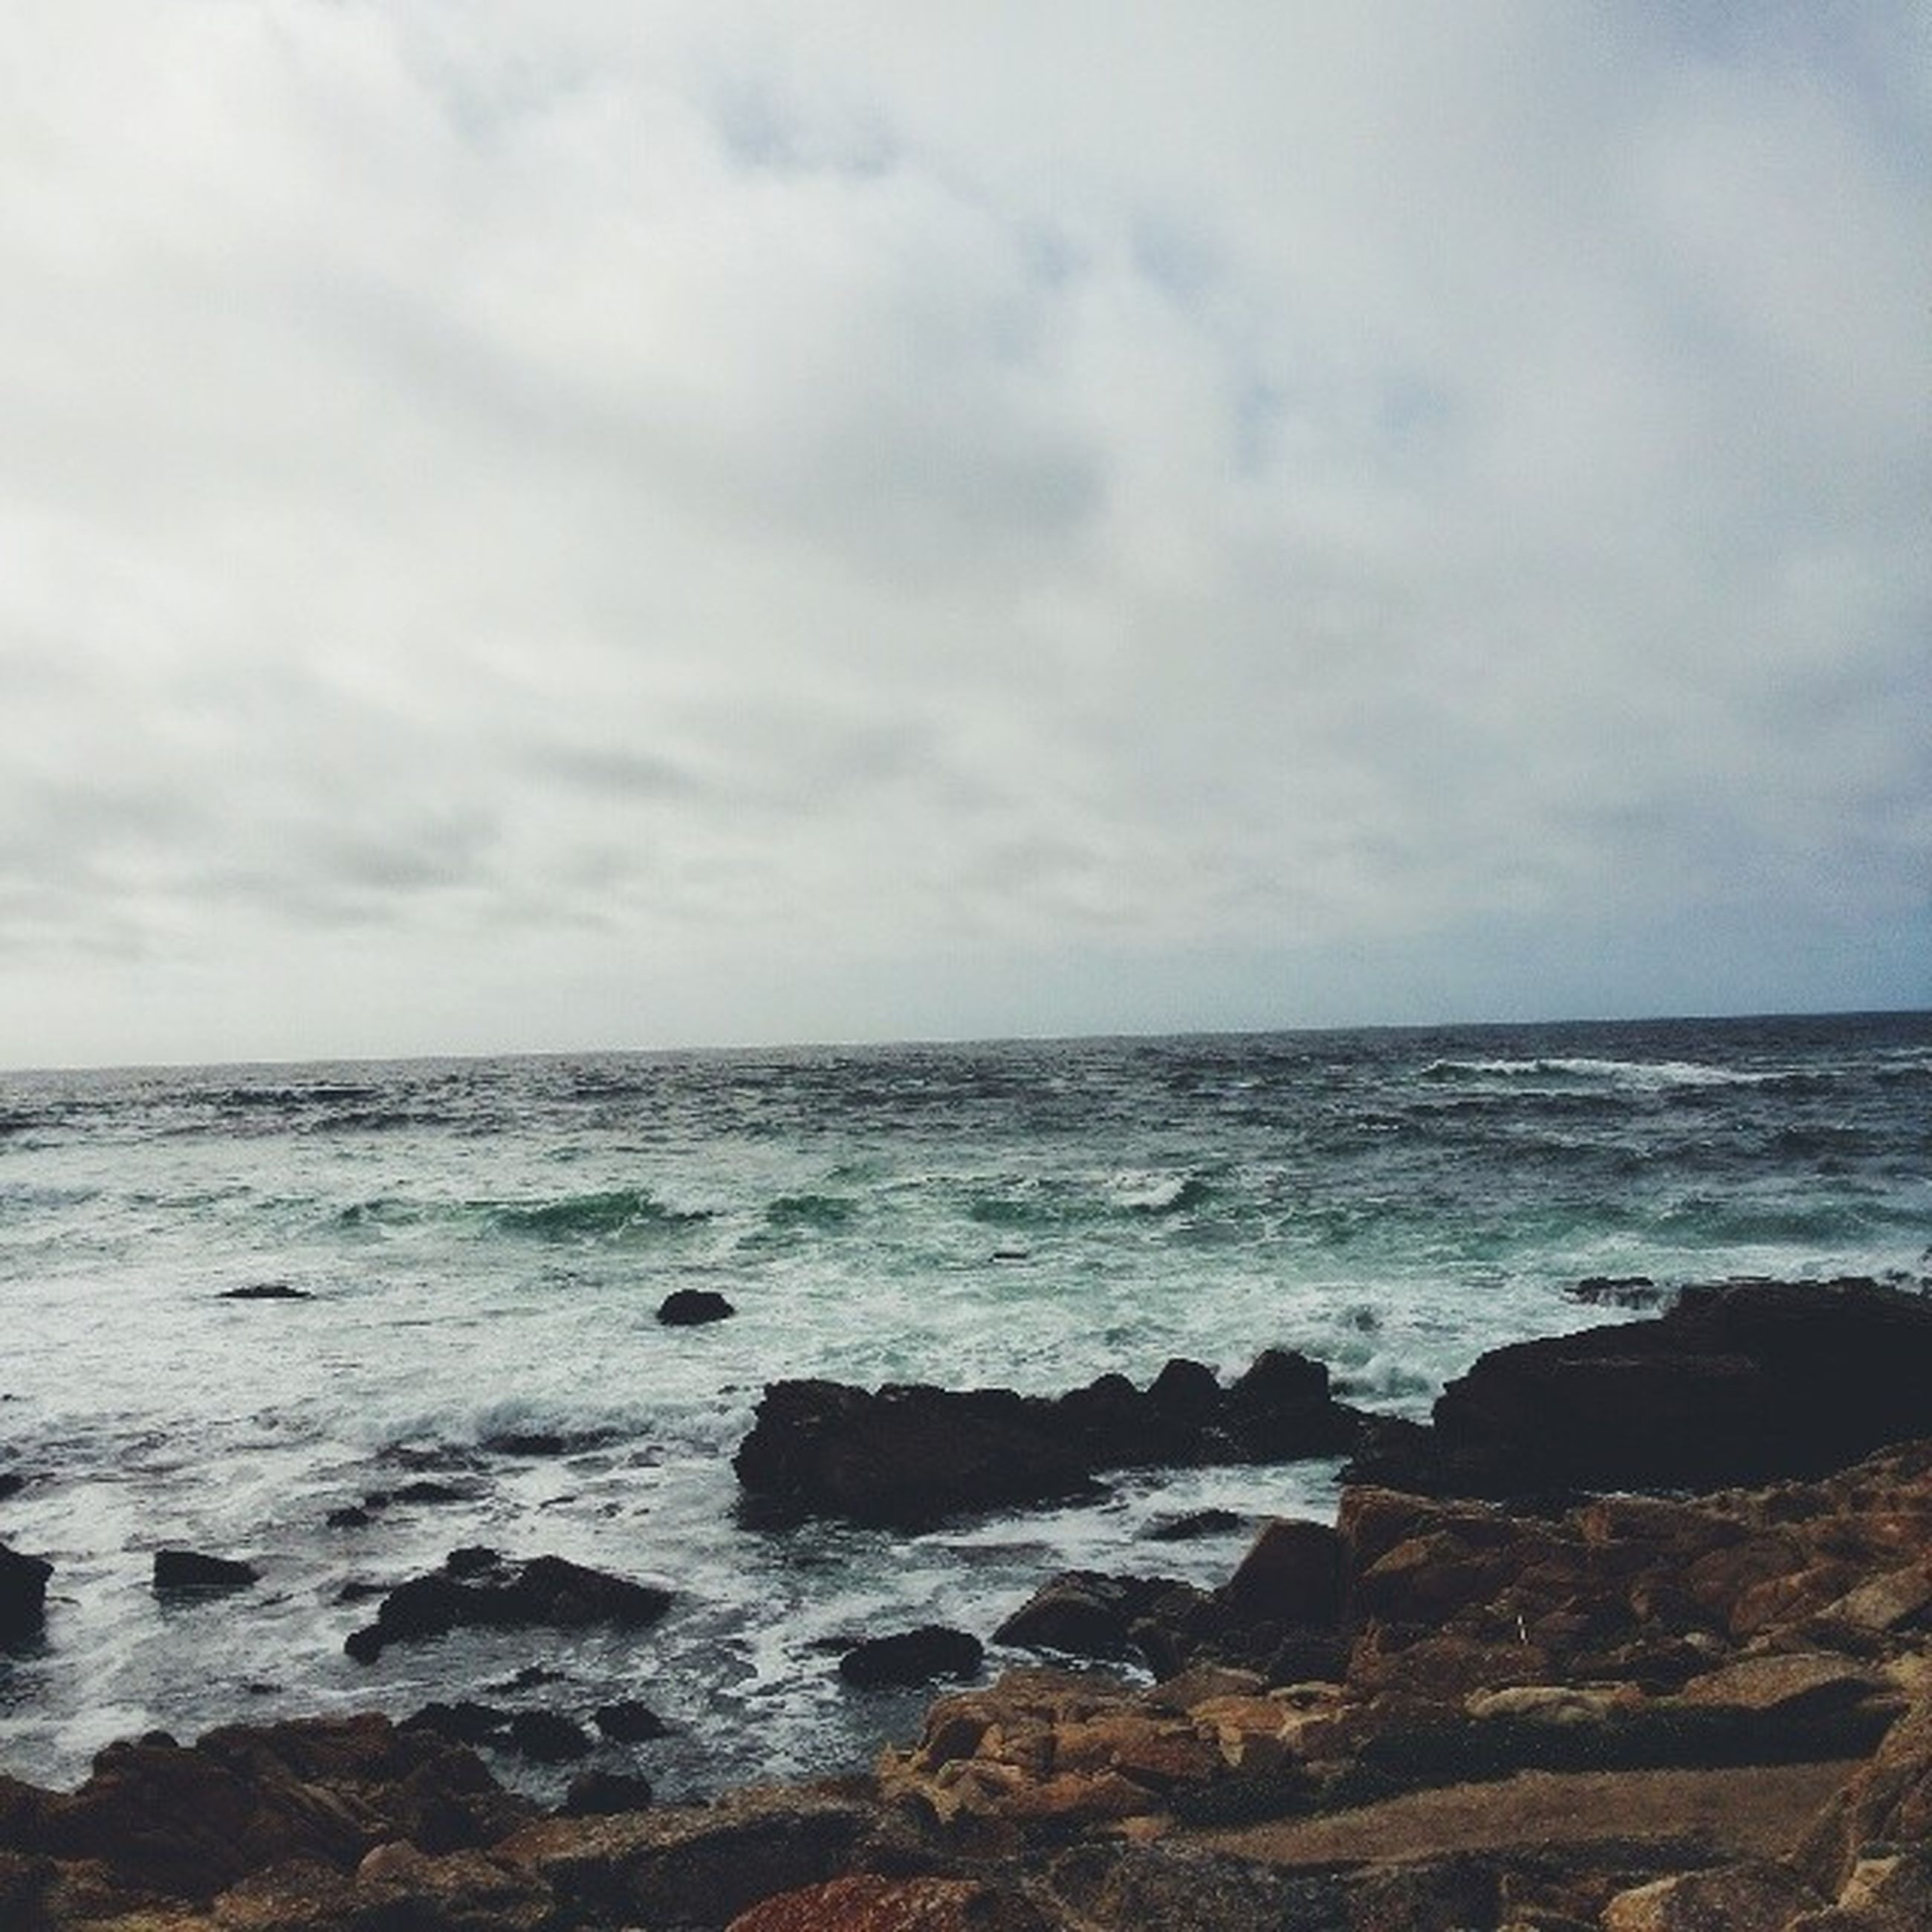 sea, horizon over water, water, sky, scenics, beauty in nature, tranquil scene, tranquility, beach, nature, cloud - sky, wave, shore, rock - object, cloudy, idyllic, cloud, seascape, surf, outdoors